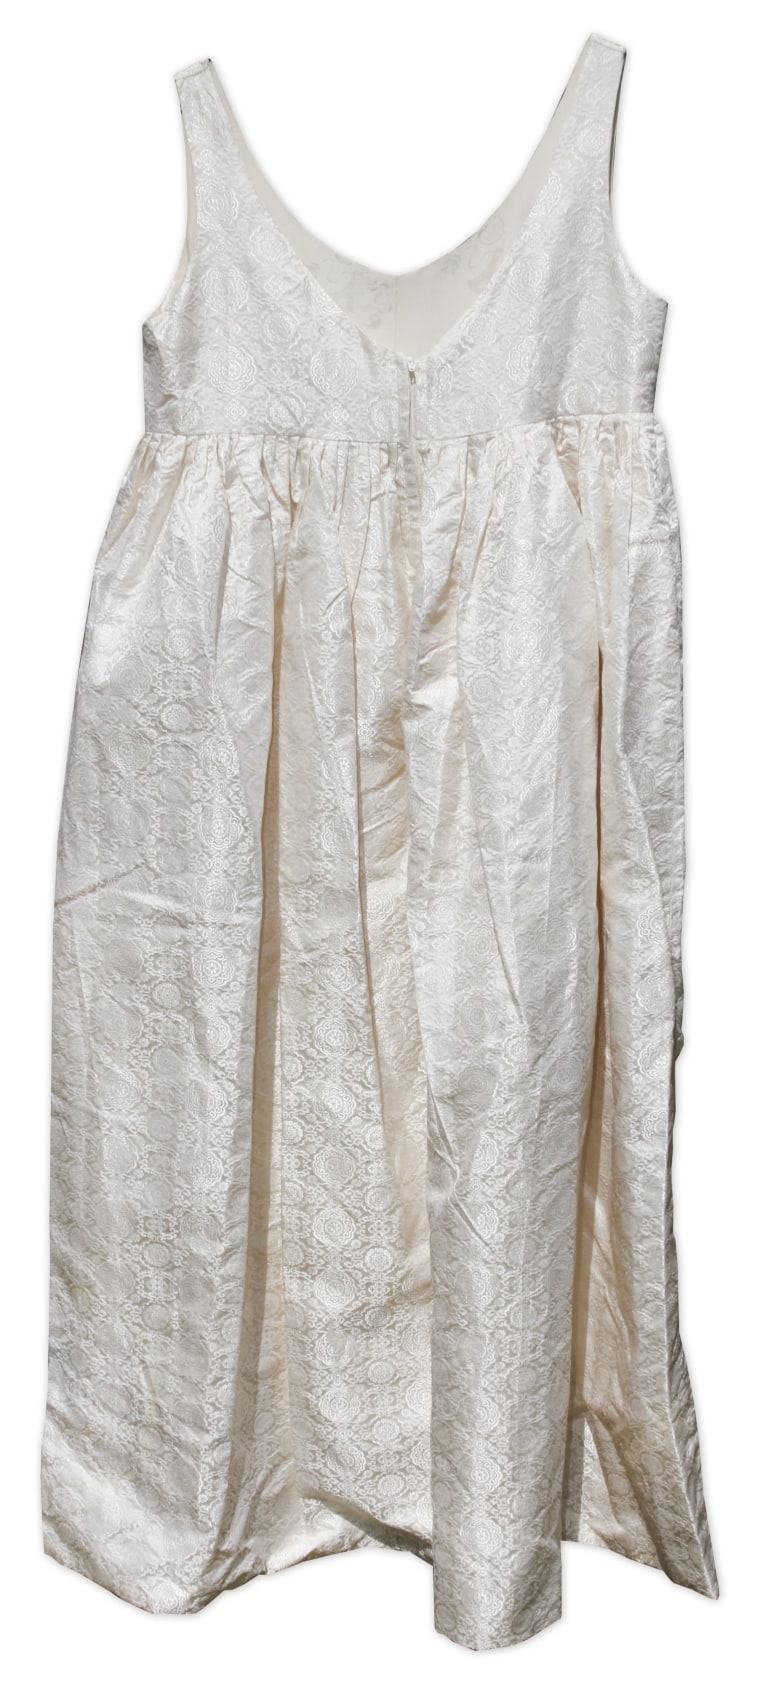 The first lady wore this maternity dress in 1960, when she was pregnant with John F. Kennedy Jr.